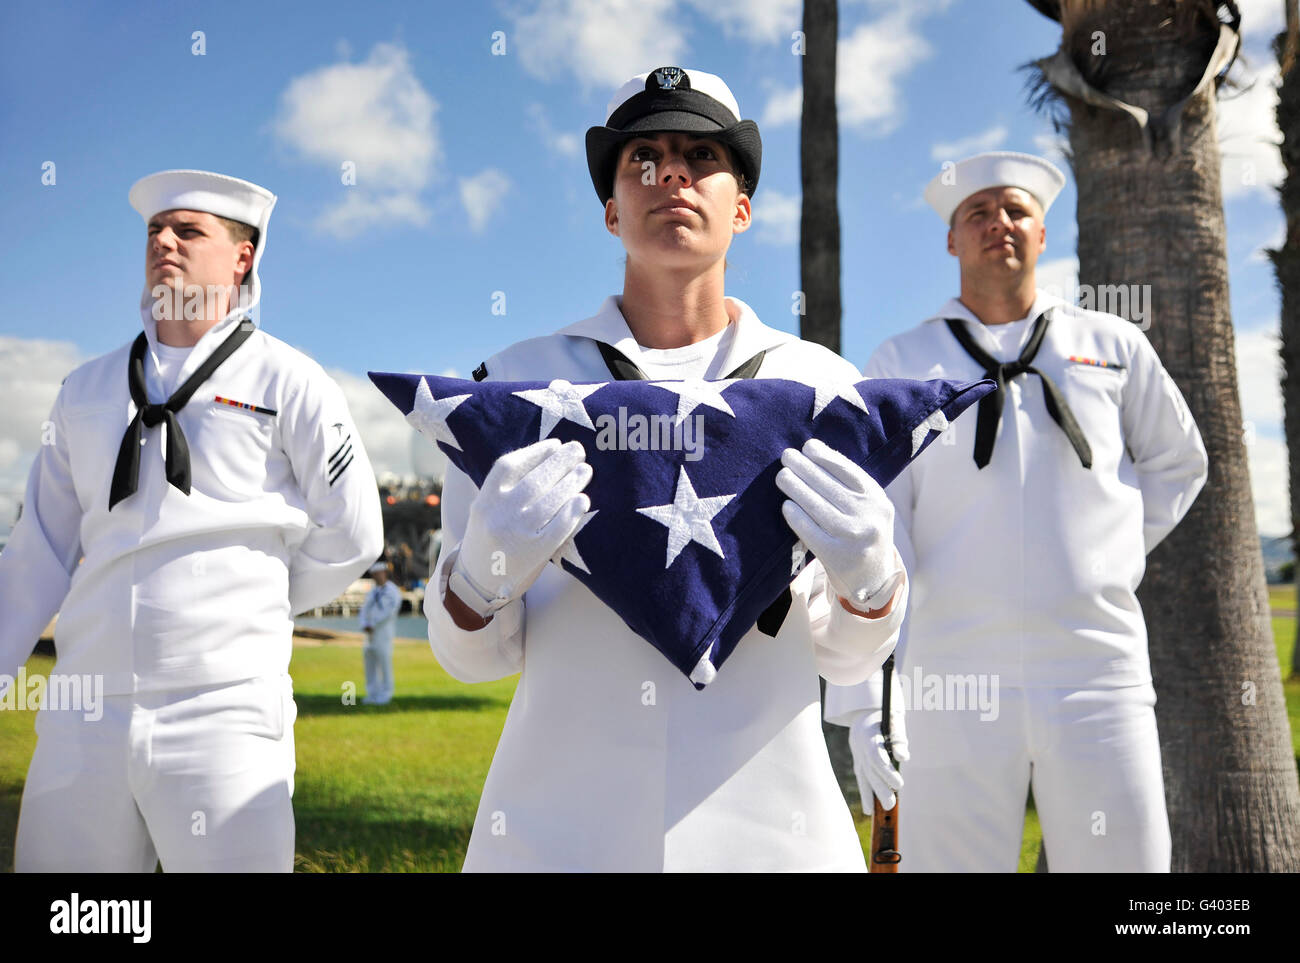 Members of the Joint Base Pearl Harbor-Hickam Honors and Ceremonial Guard. - Stock Image